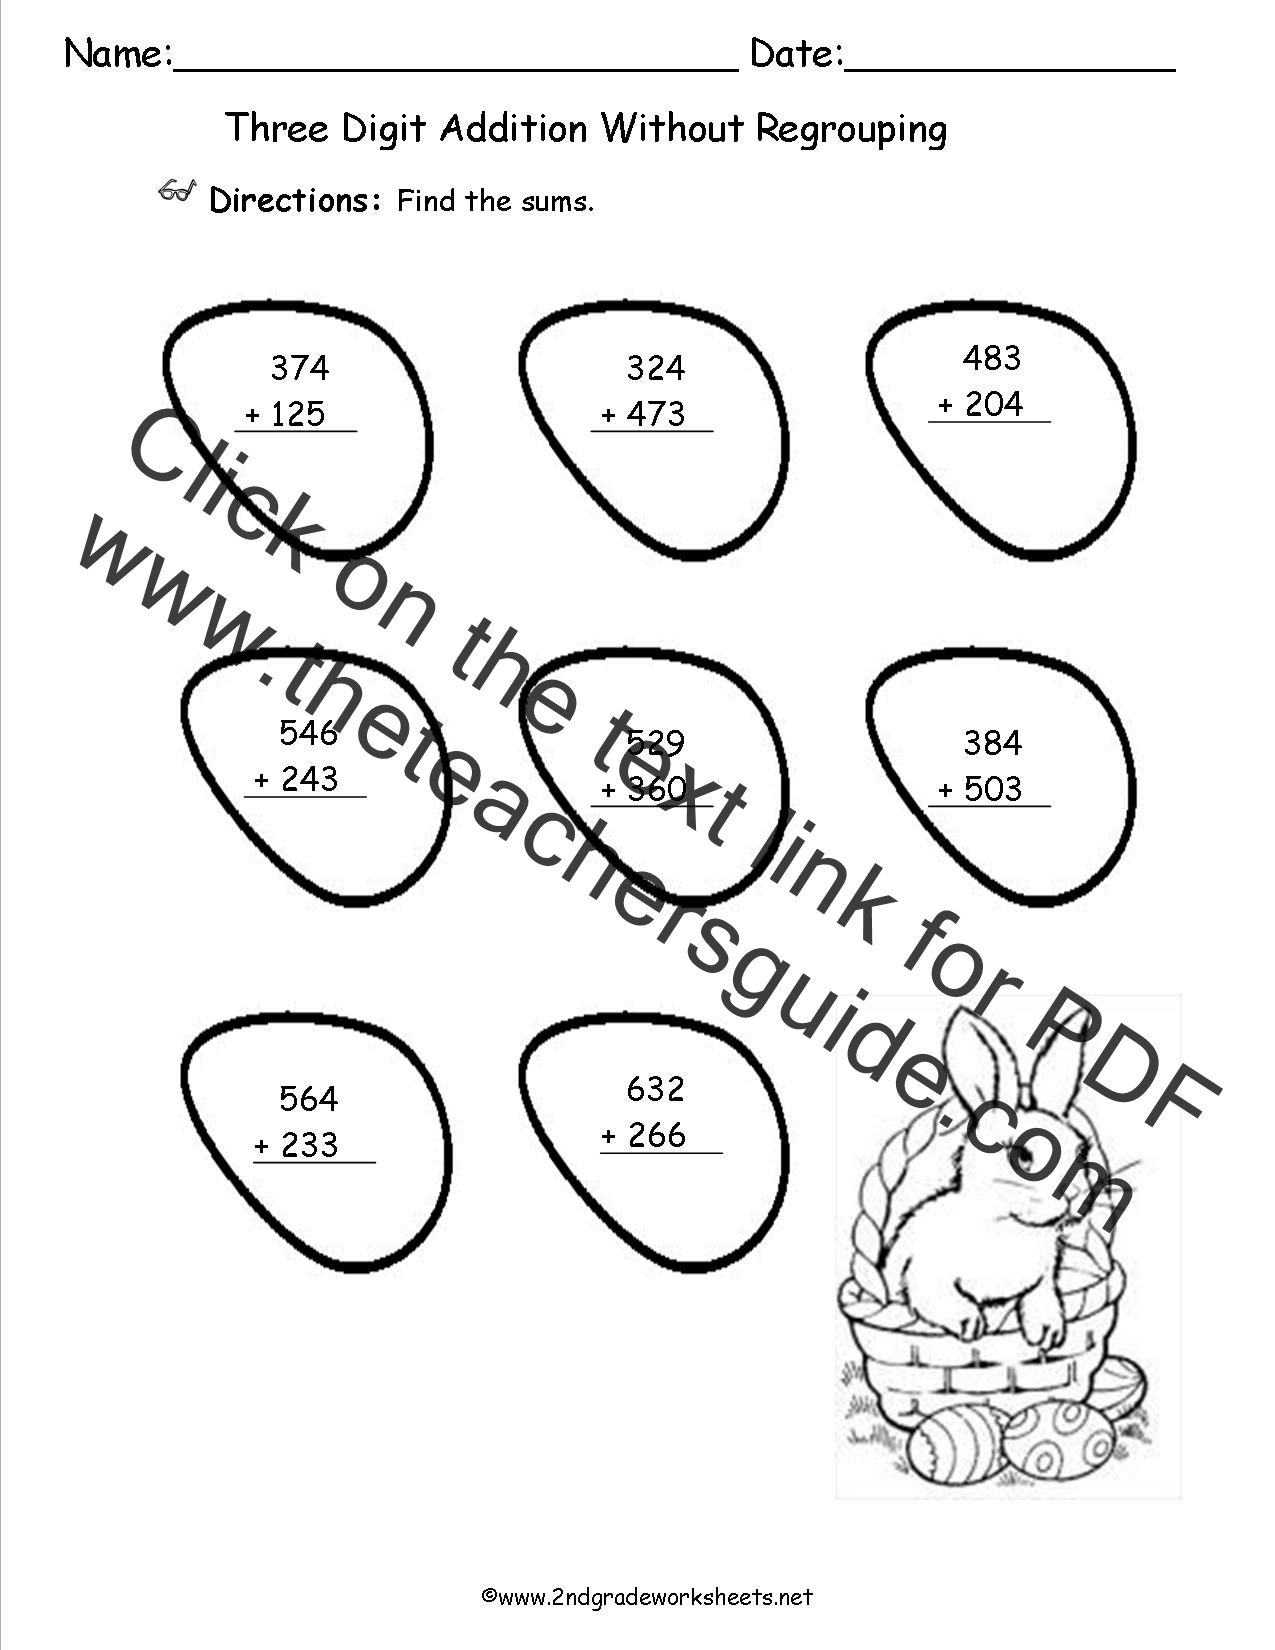 worksheet Free Easter Worksheets easter worksheets and printouts three digit addition without regrouping easter